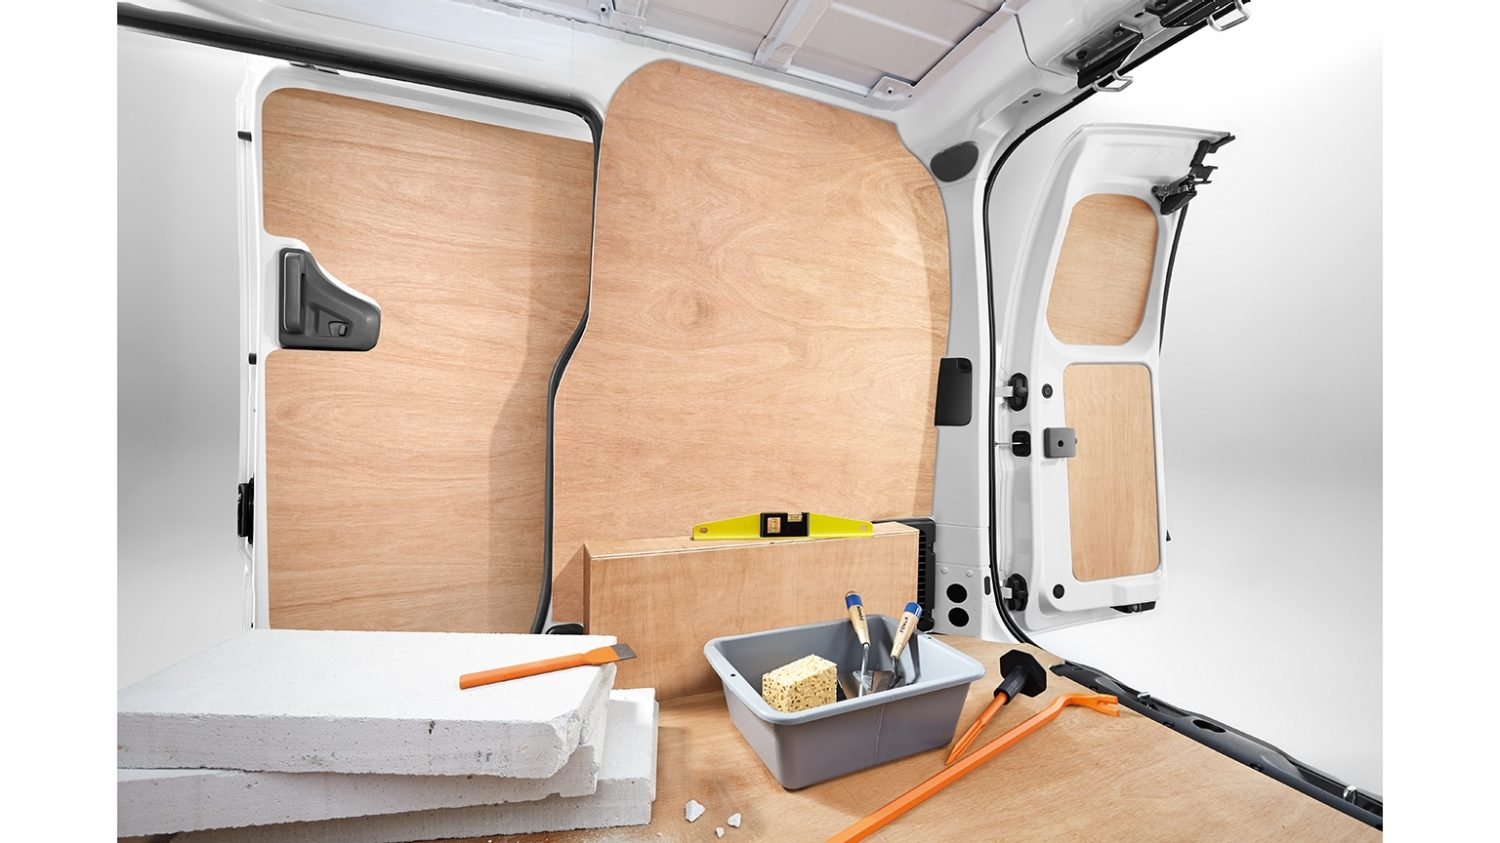 Nissan NV200 - Interior - Full kit wood protection for French doors